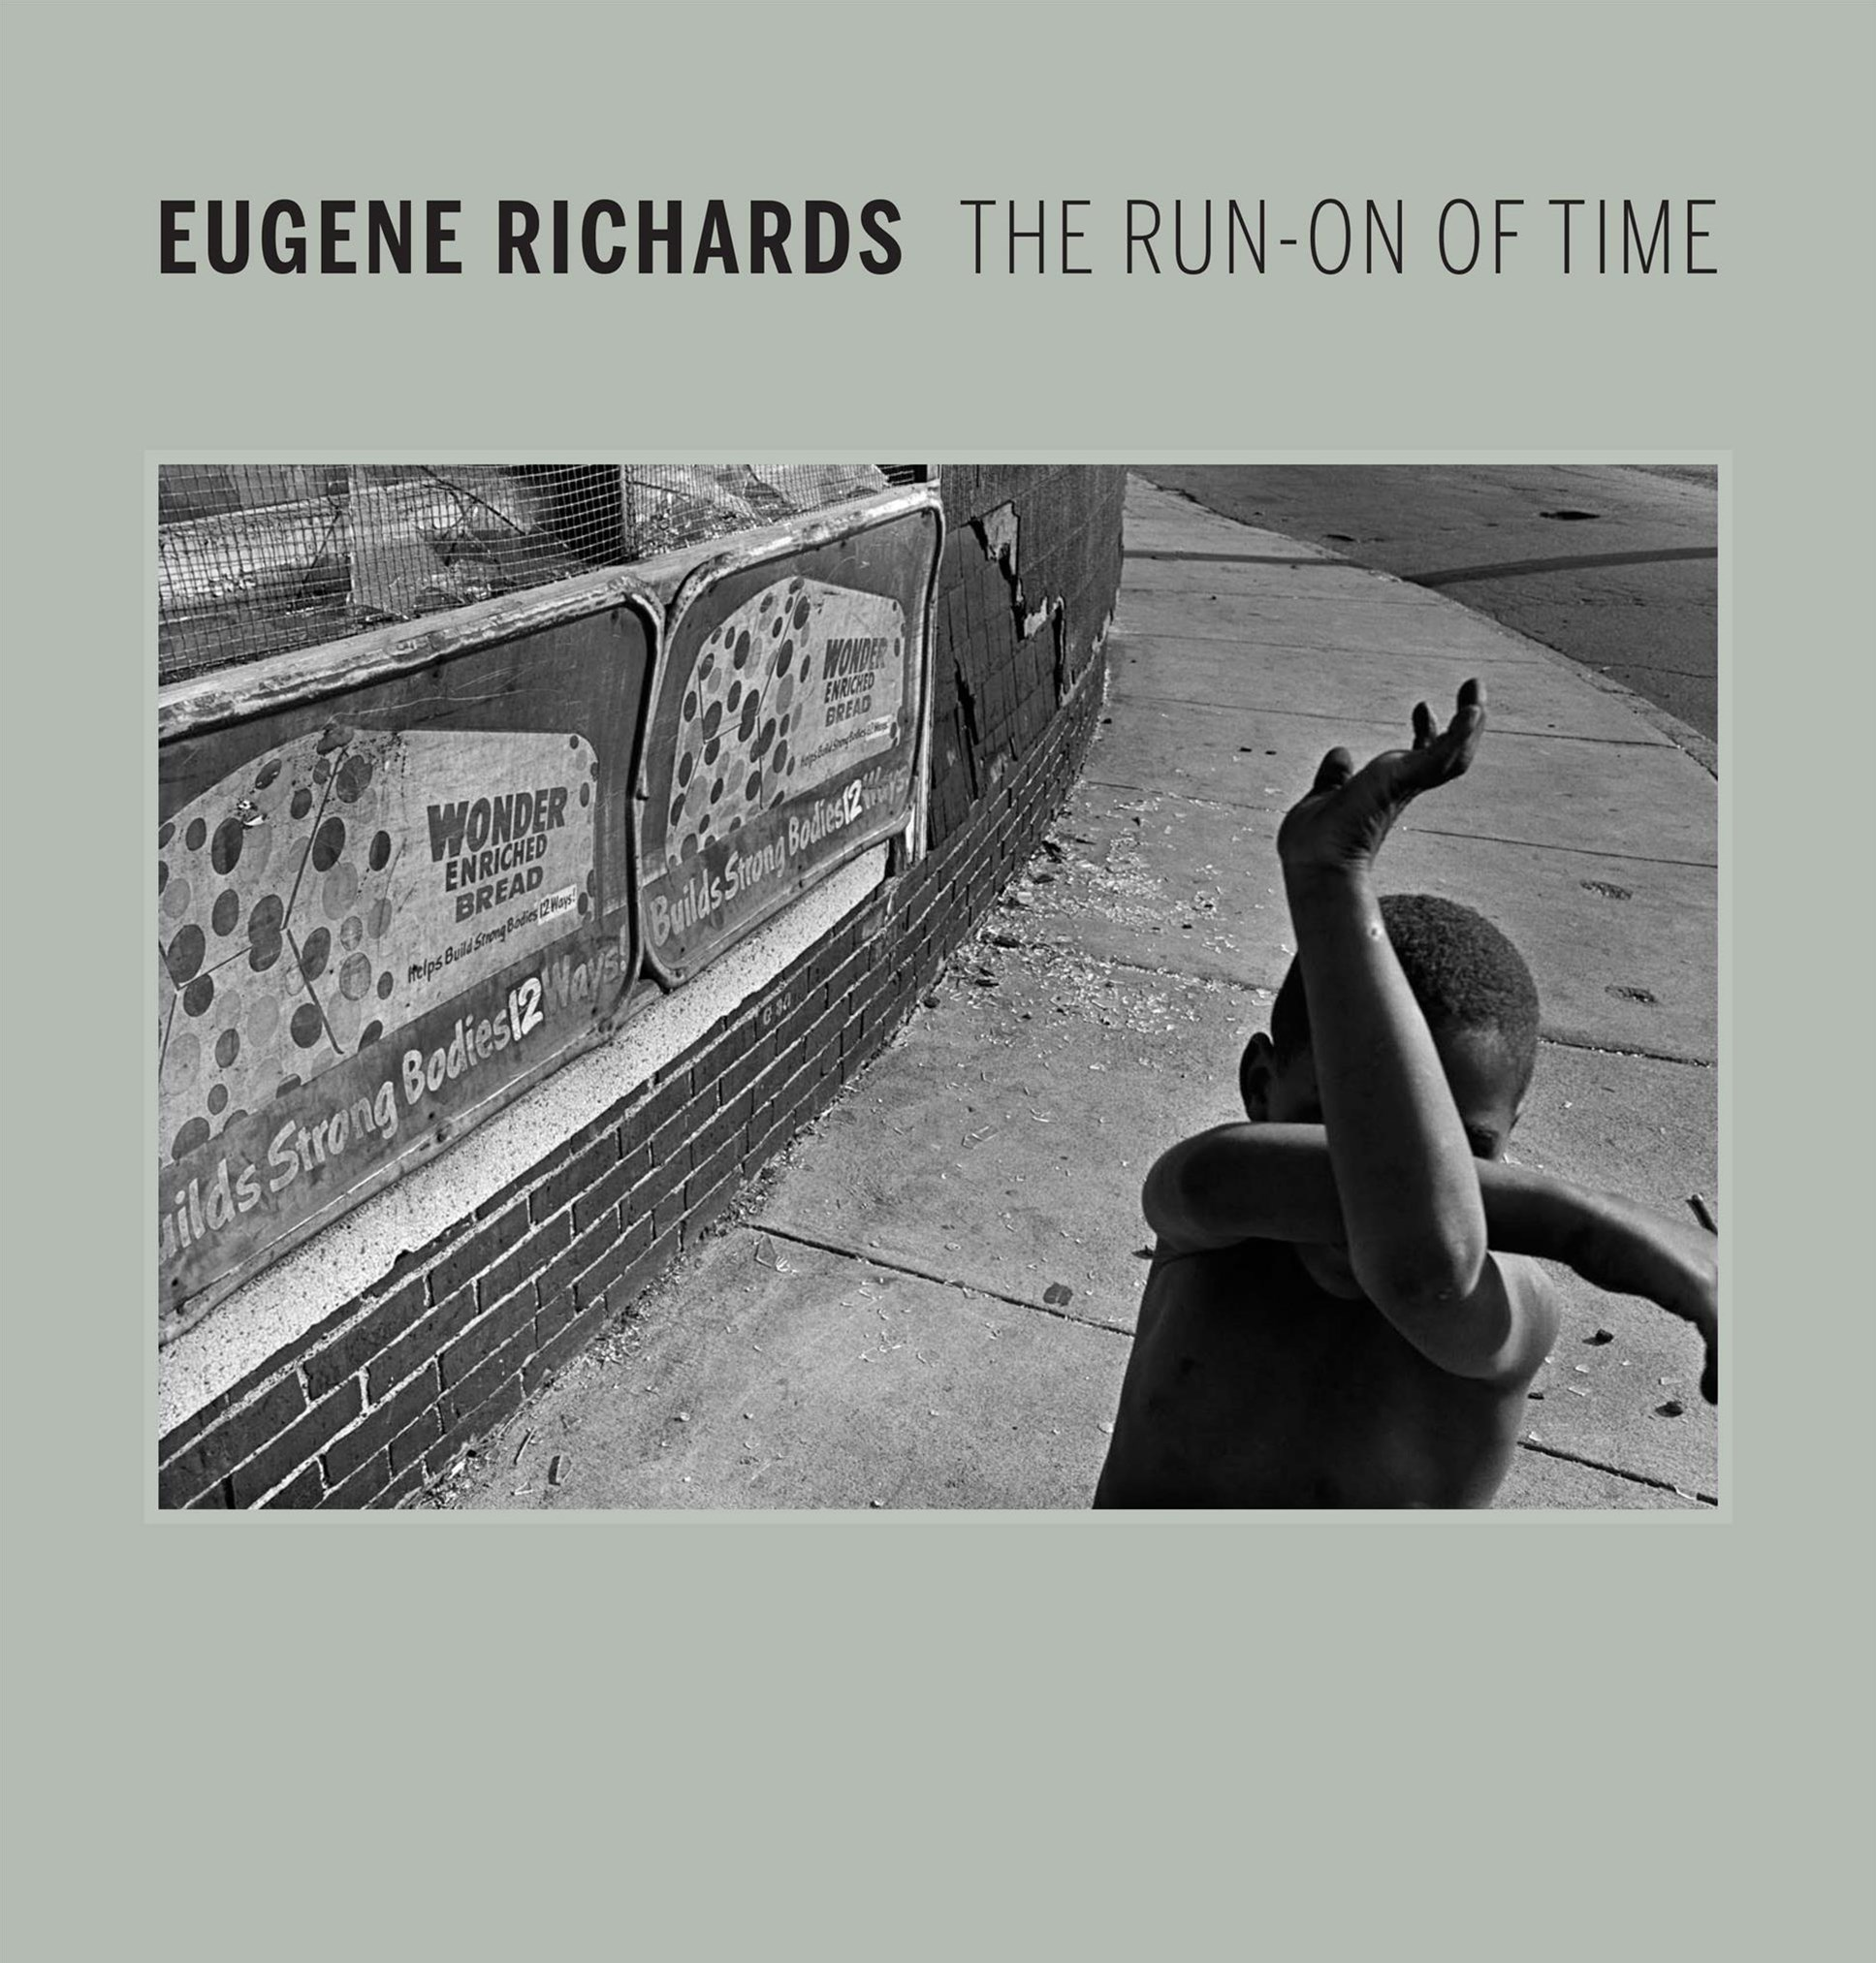 Eugene Richards: The Run-On of Time